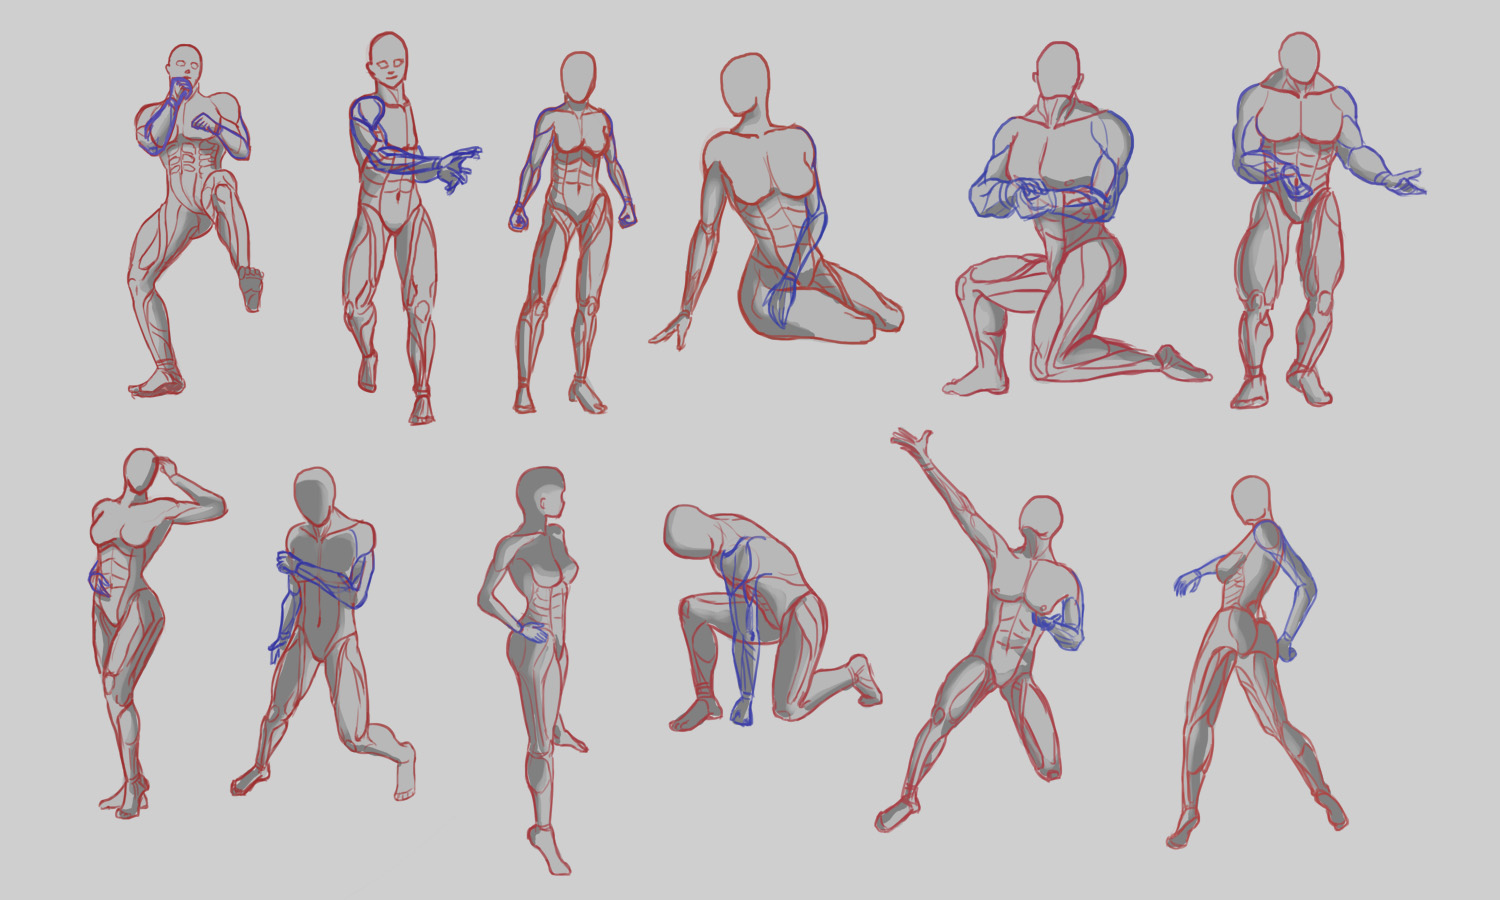 Anatomy Poses By Ck95 On Deviantart